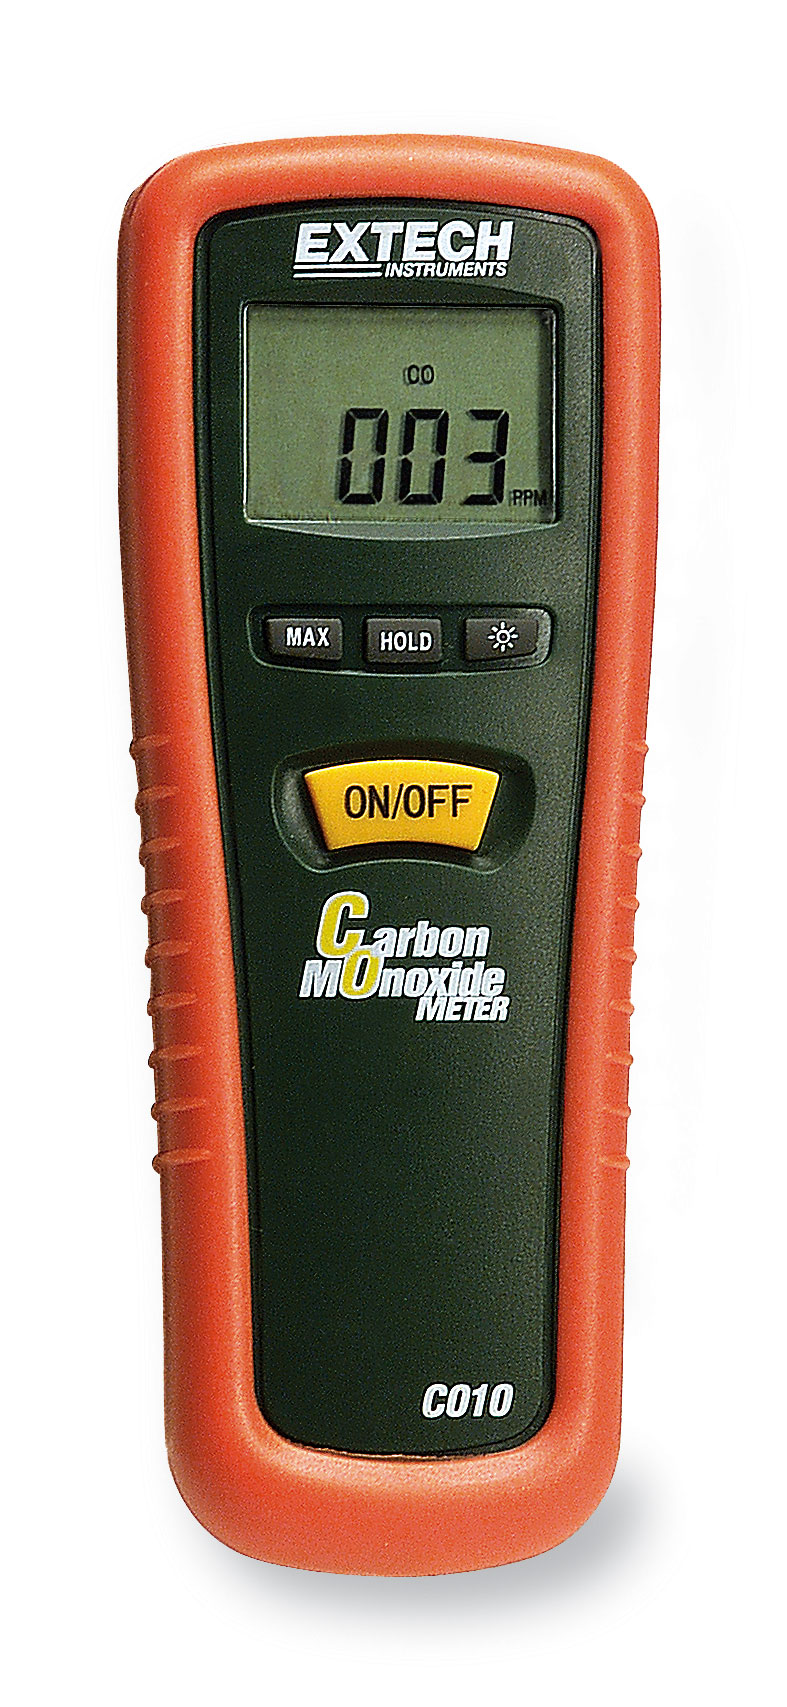 extech co10 carbon monoxide meter 0 to 1000 ppm from davis. Black Bedroom Furniture Sets. Home Design Ideas